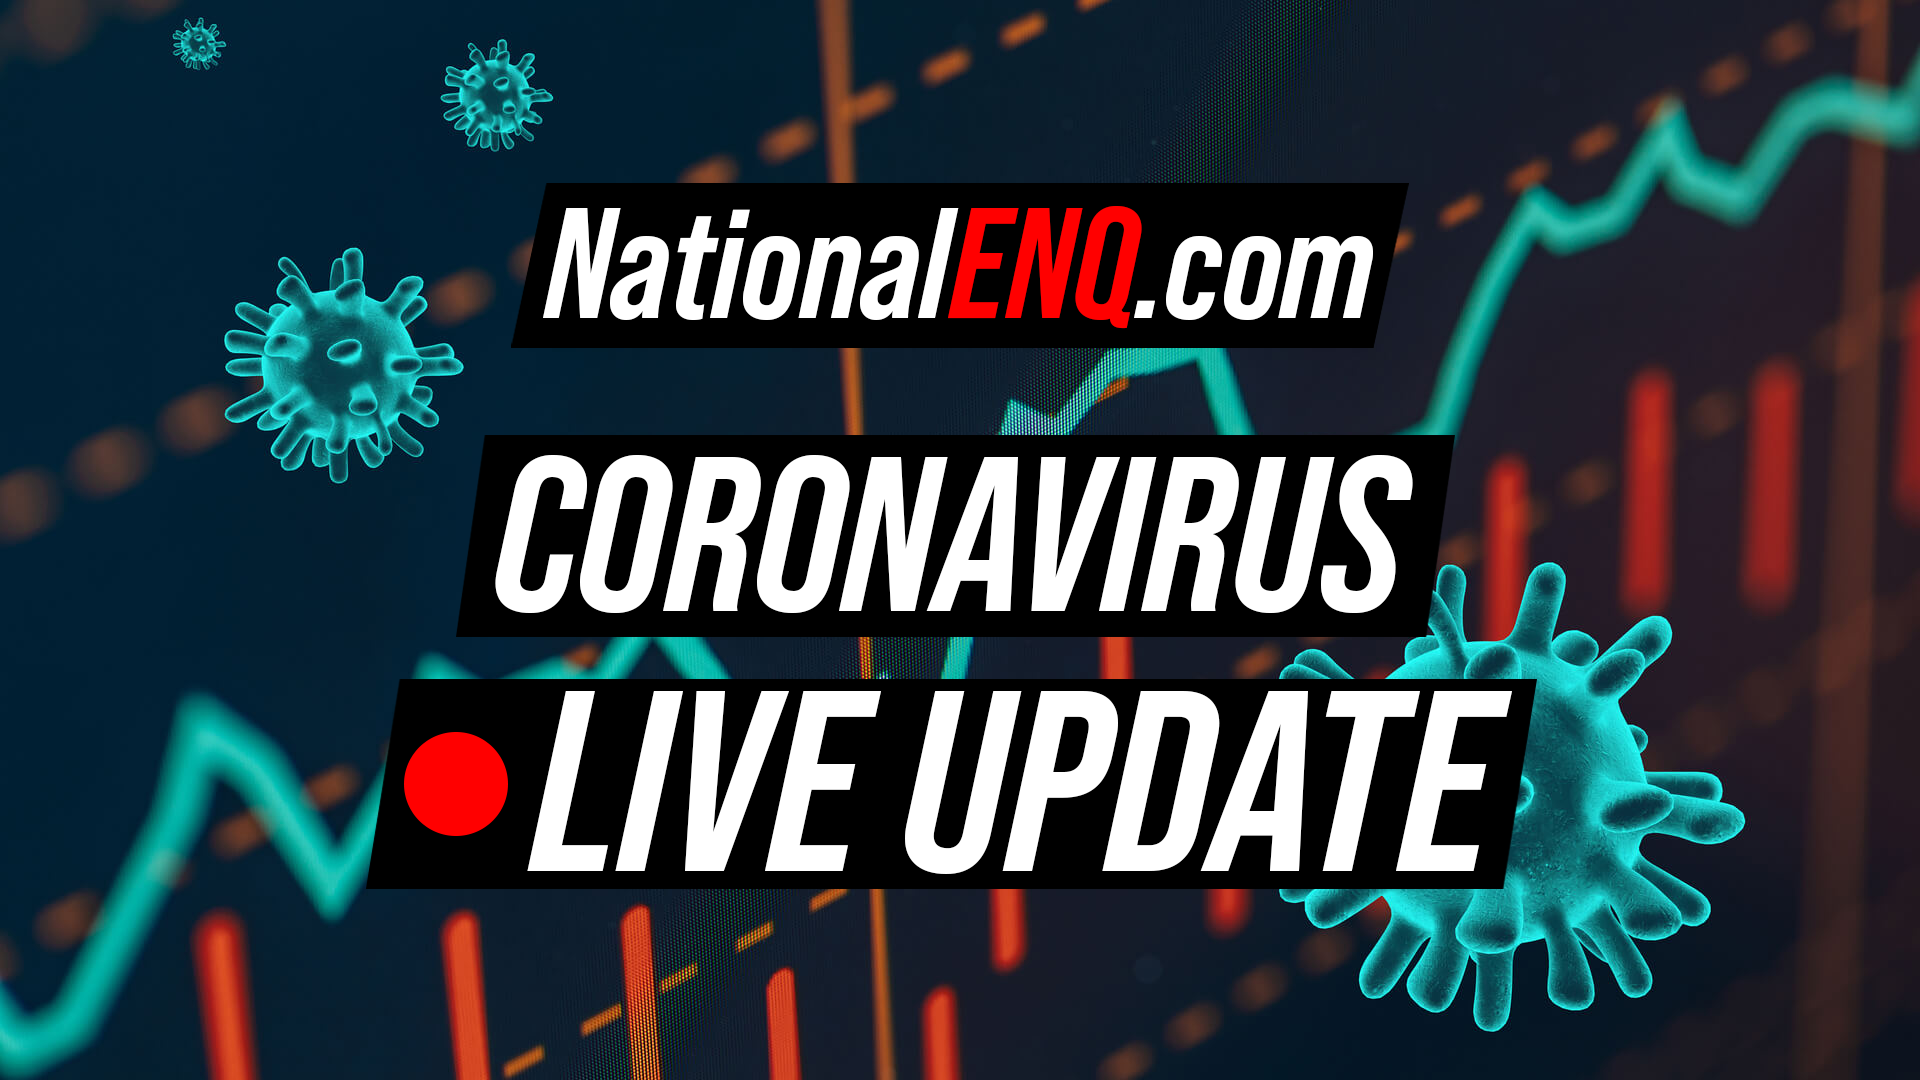 National ENQ Coronavirus (COVID-19) Live Update: Breaking News, Confirmed Cases, Death Toll, Cure & More